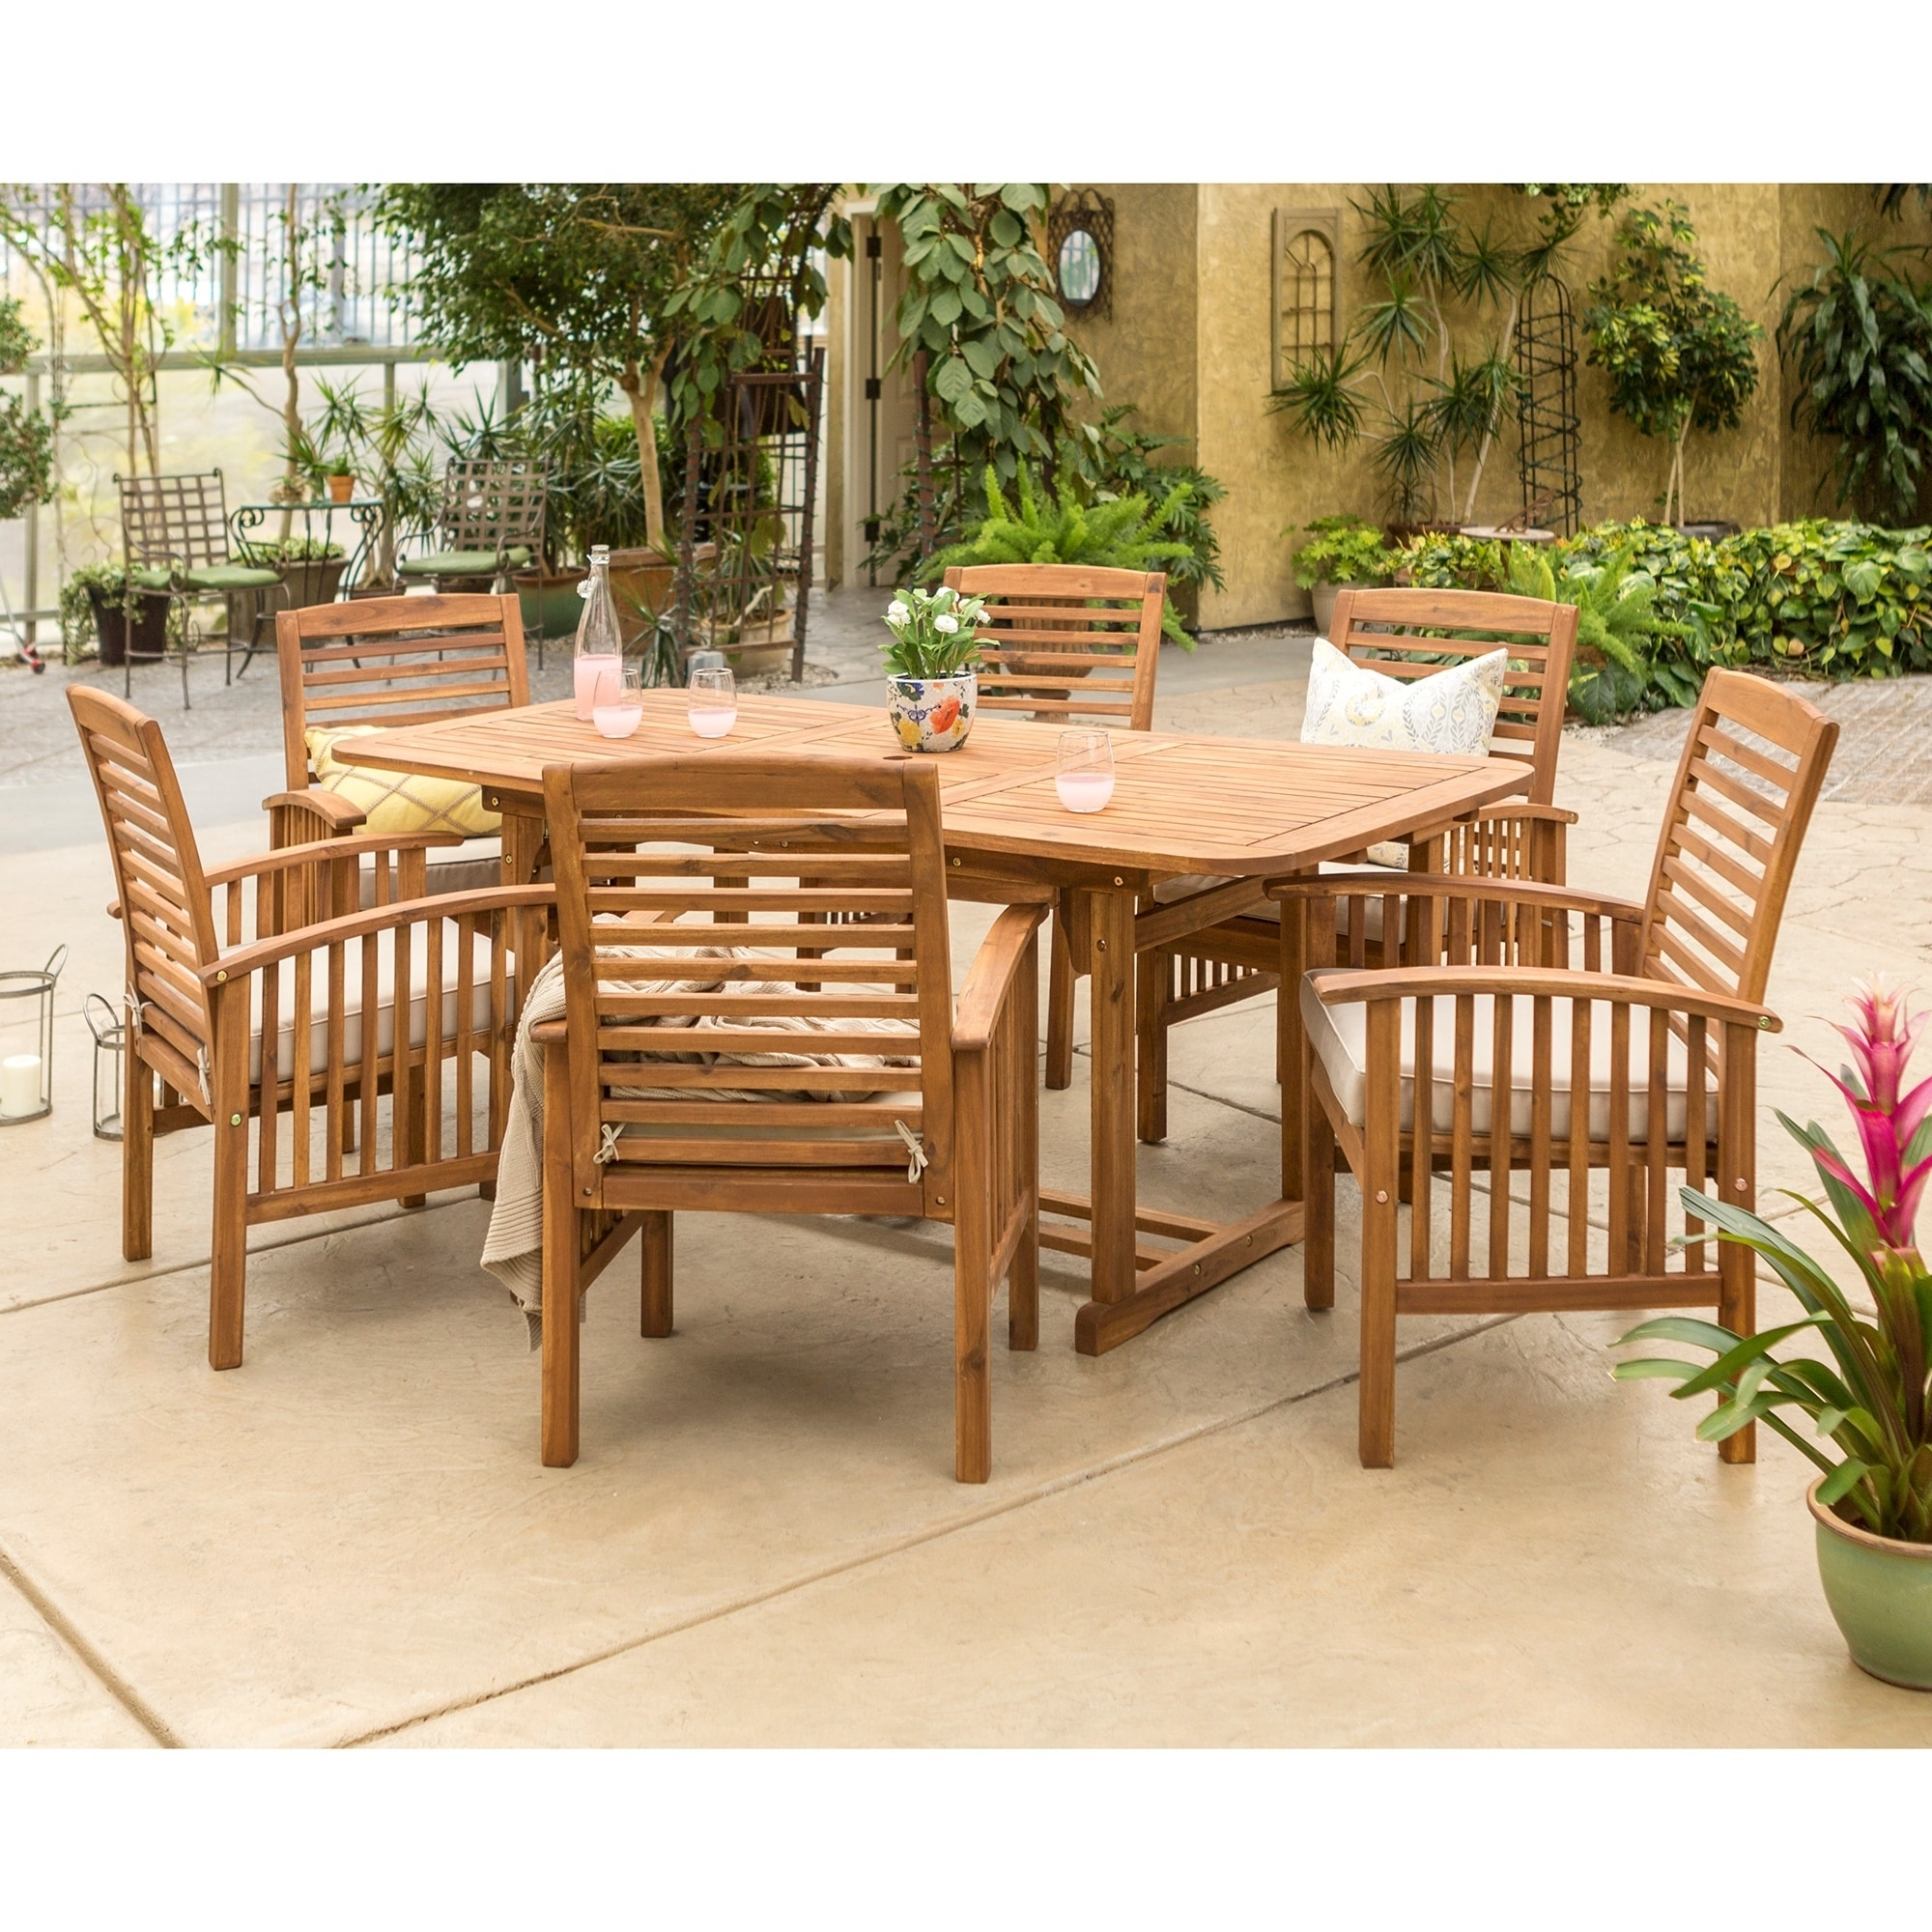 pics round garden size improvement home chairs awesome daybed elegant teak patio sofas fabulous gorgeous outdoor set furniture wooden drop dead of full photos table wood